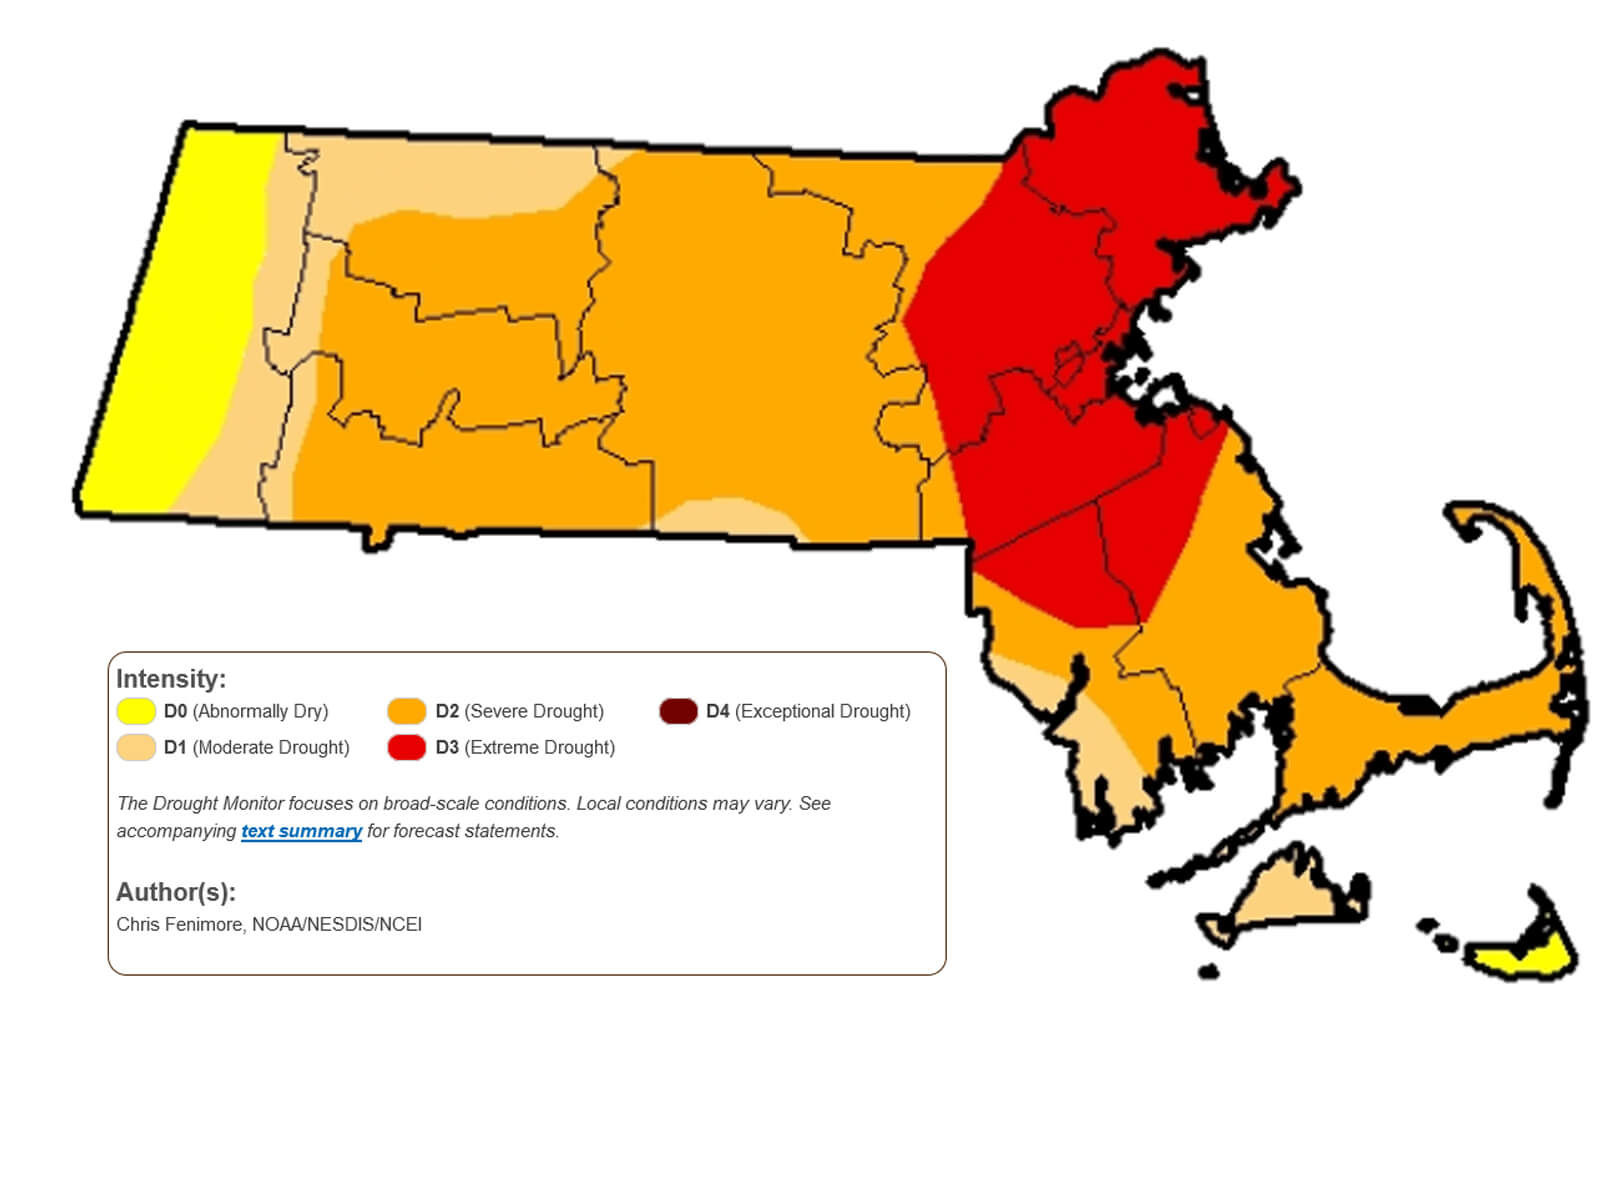 Drought continues, conservation essential - Neponset River Watershed